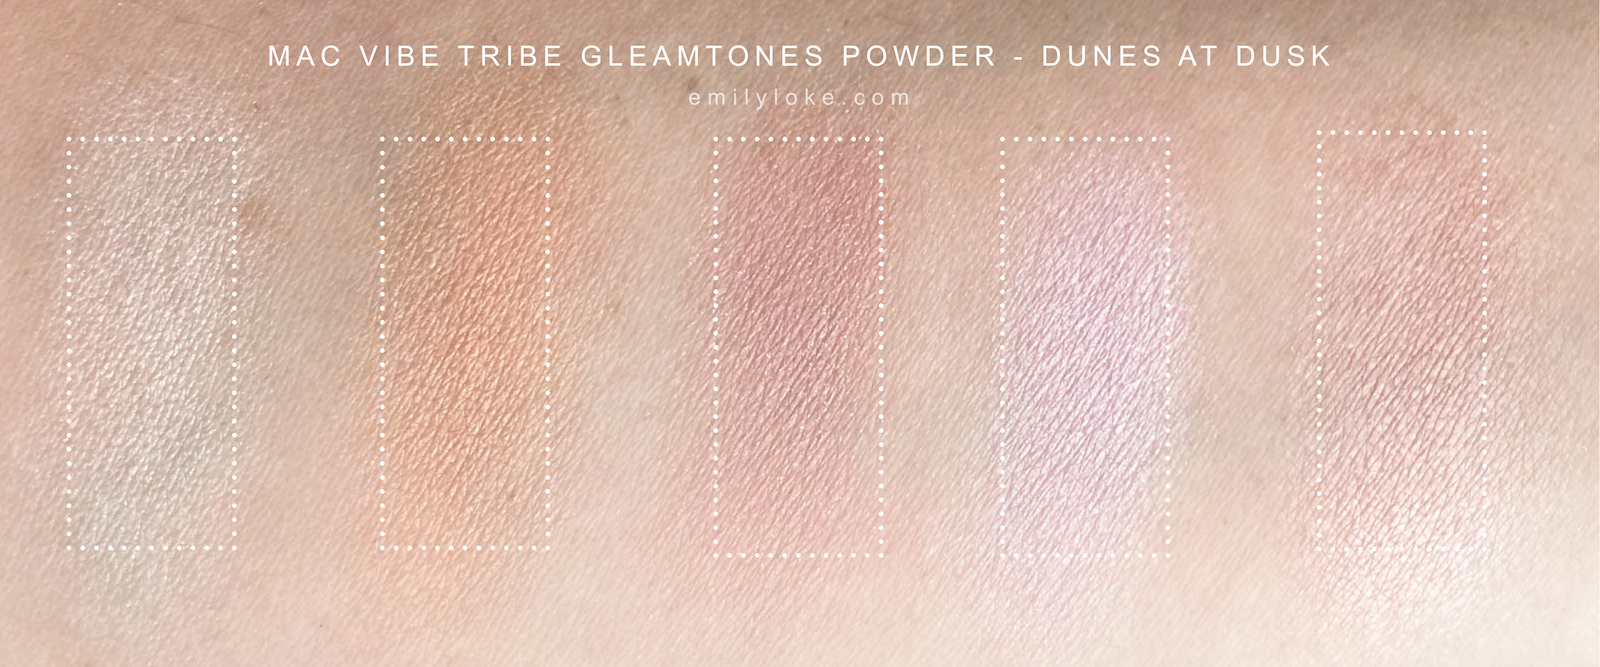 MAC Vibe Tribe Dunes at Dusk Swatches